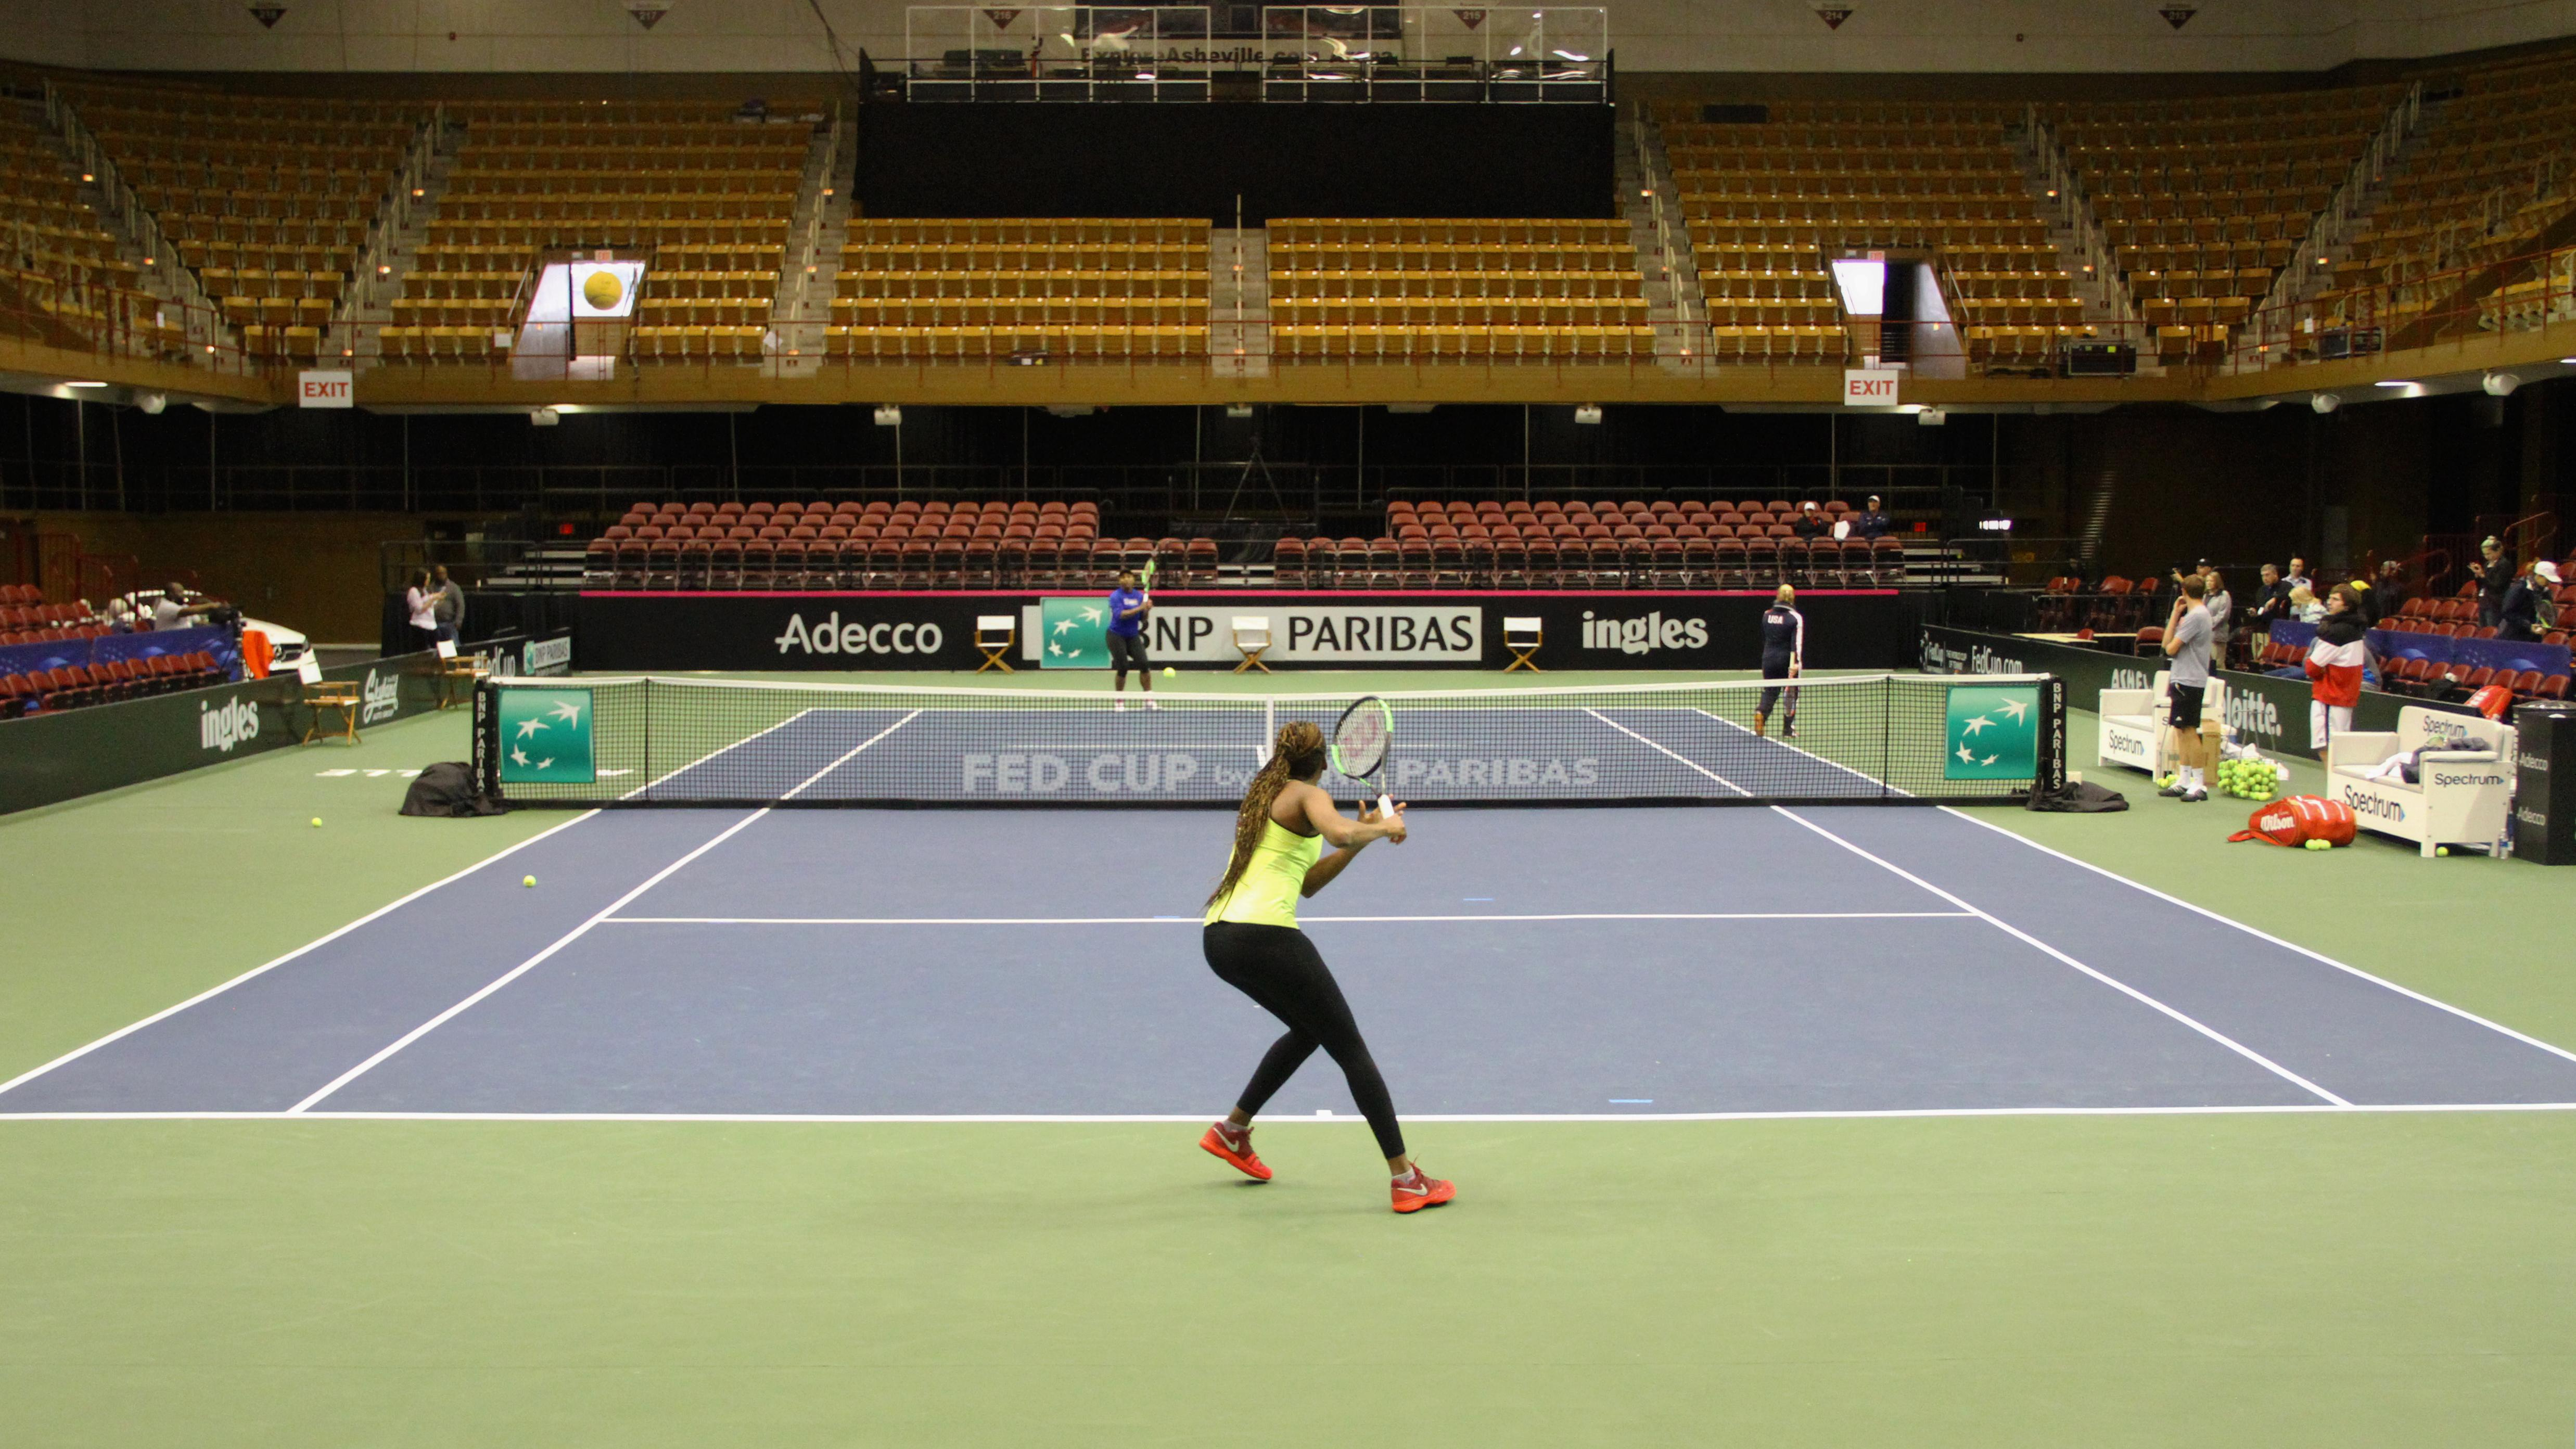 Venus and Serena Williams practice ahead of the US Fed Cup. (Photo credit: WLOS Staff)